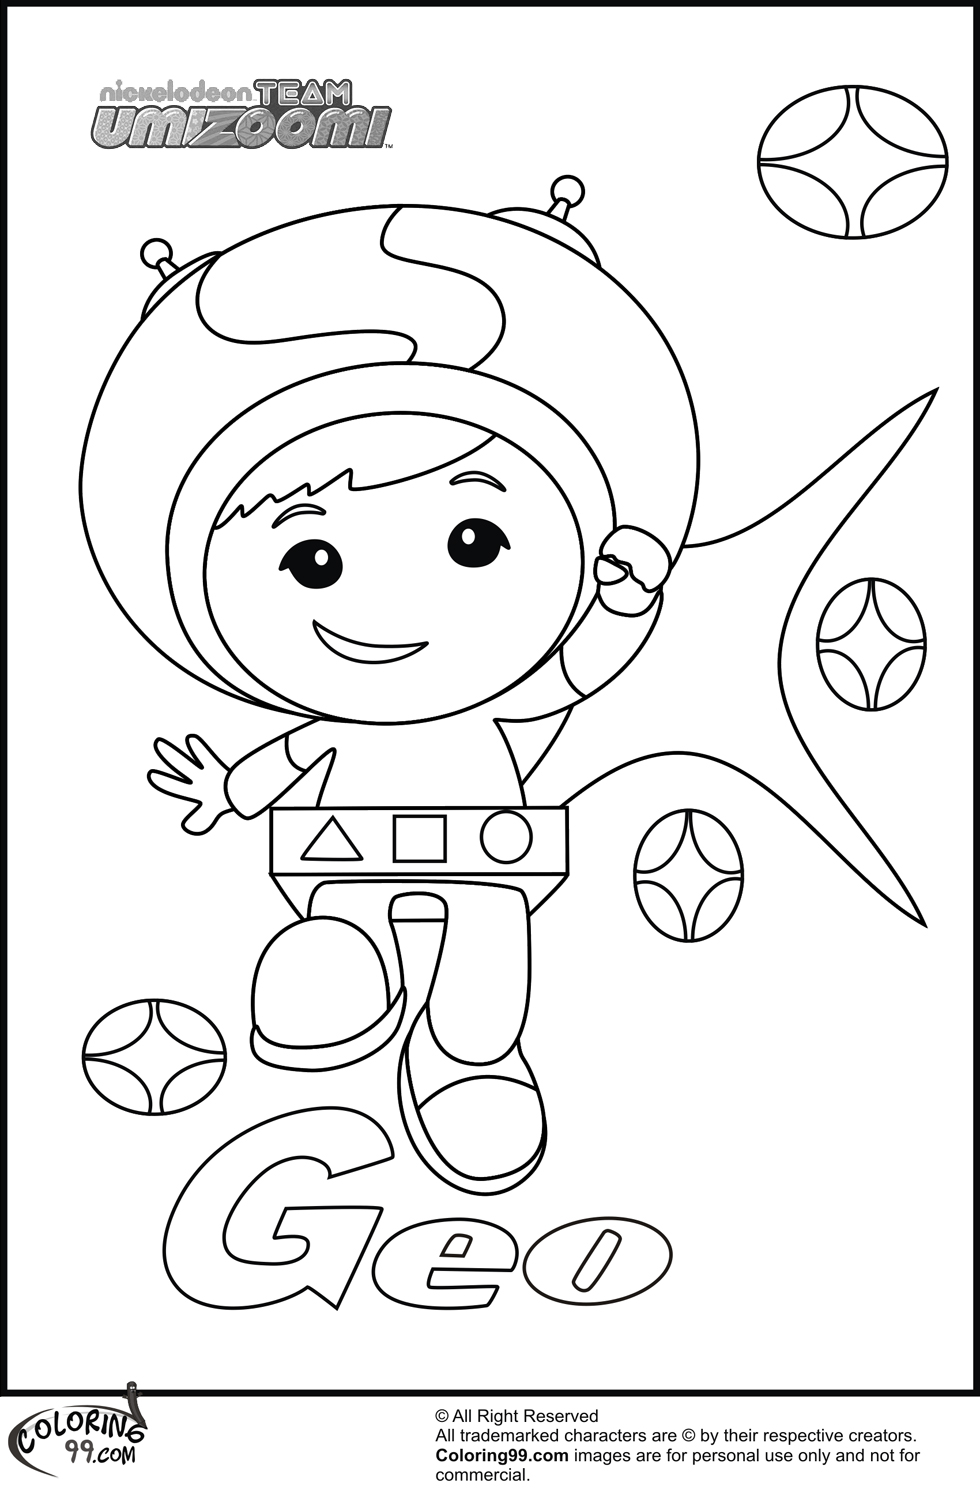 team umizoomi birthday coloring pages - photo#23